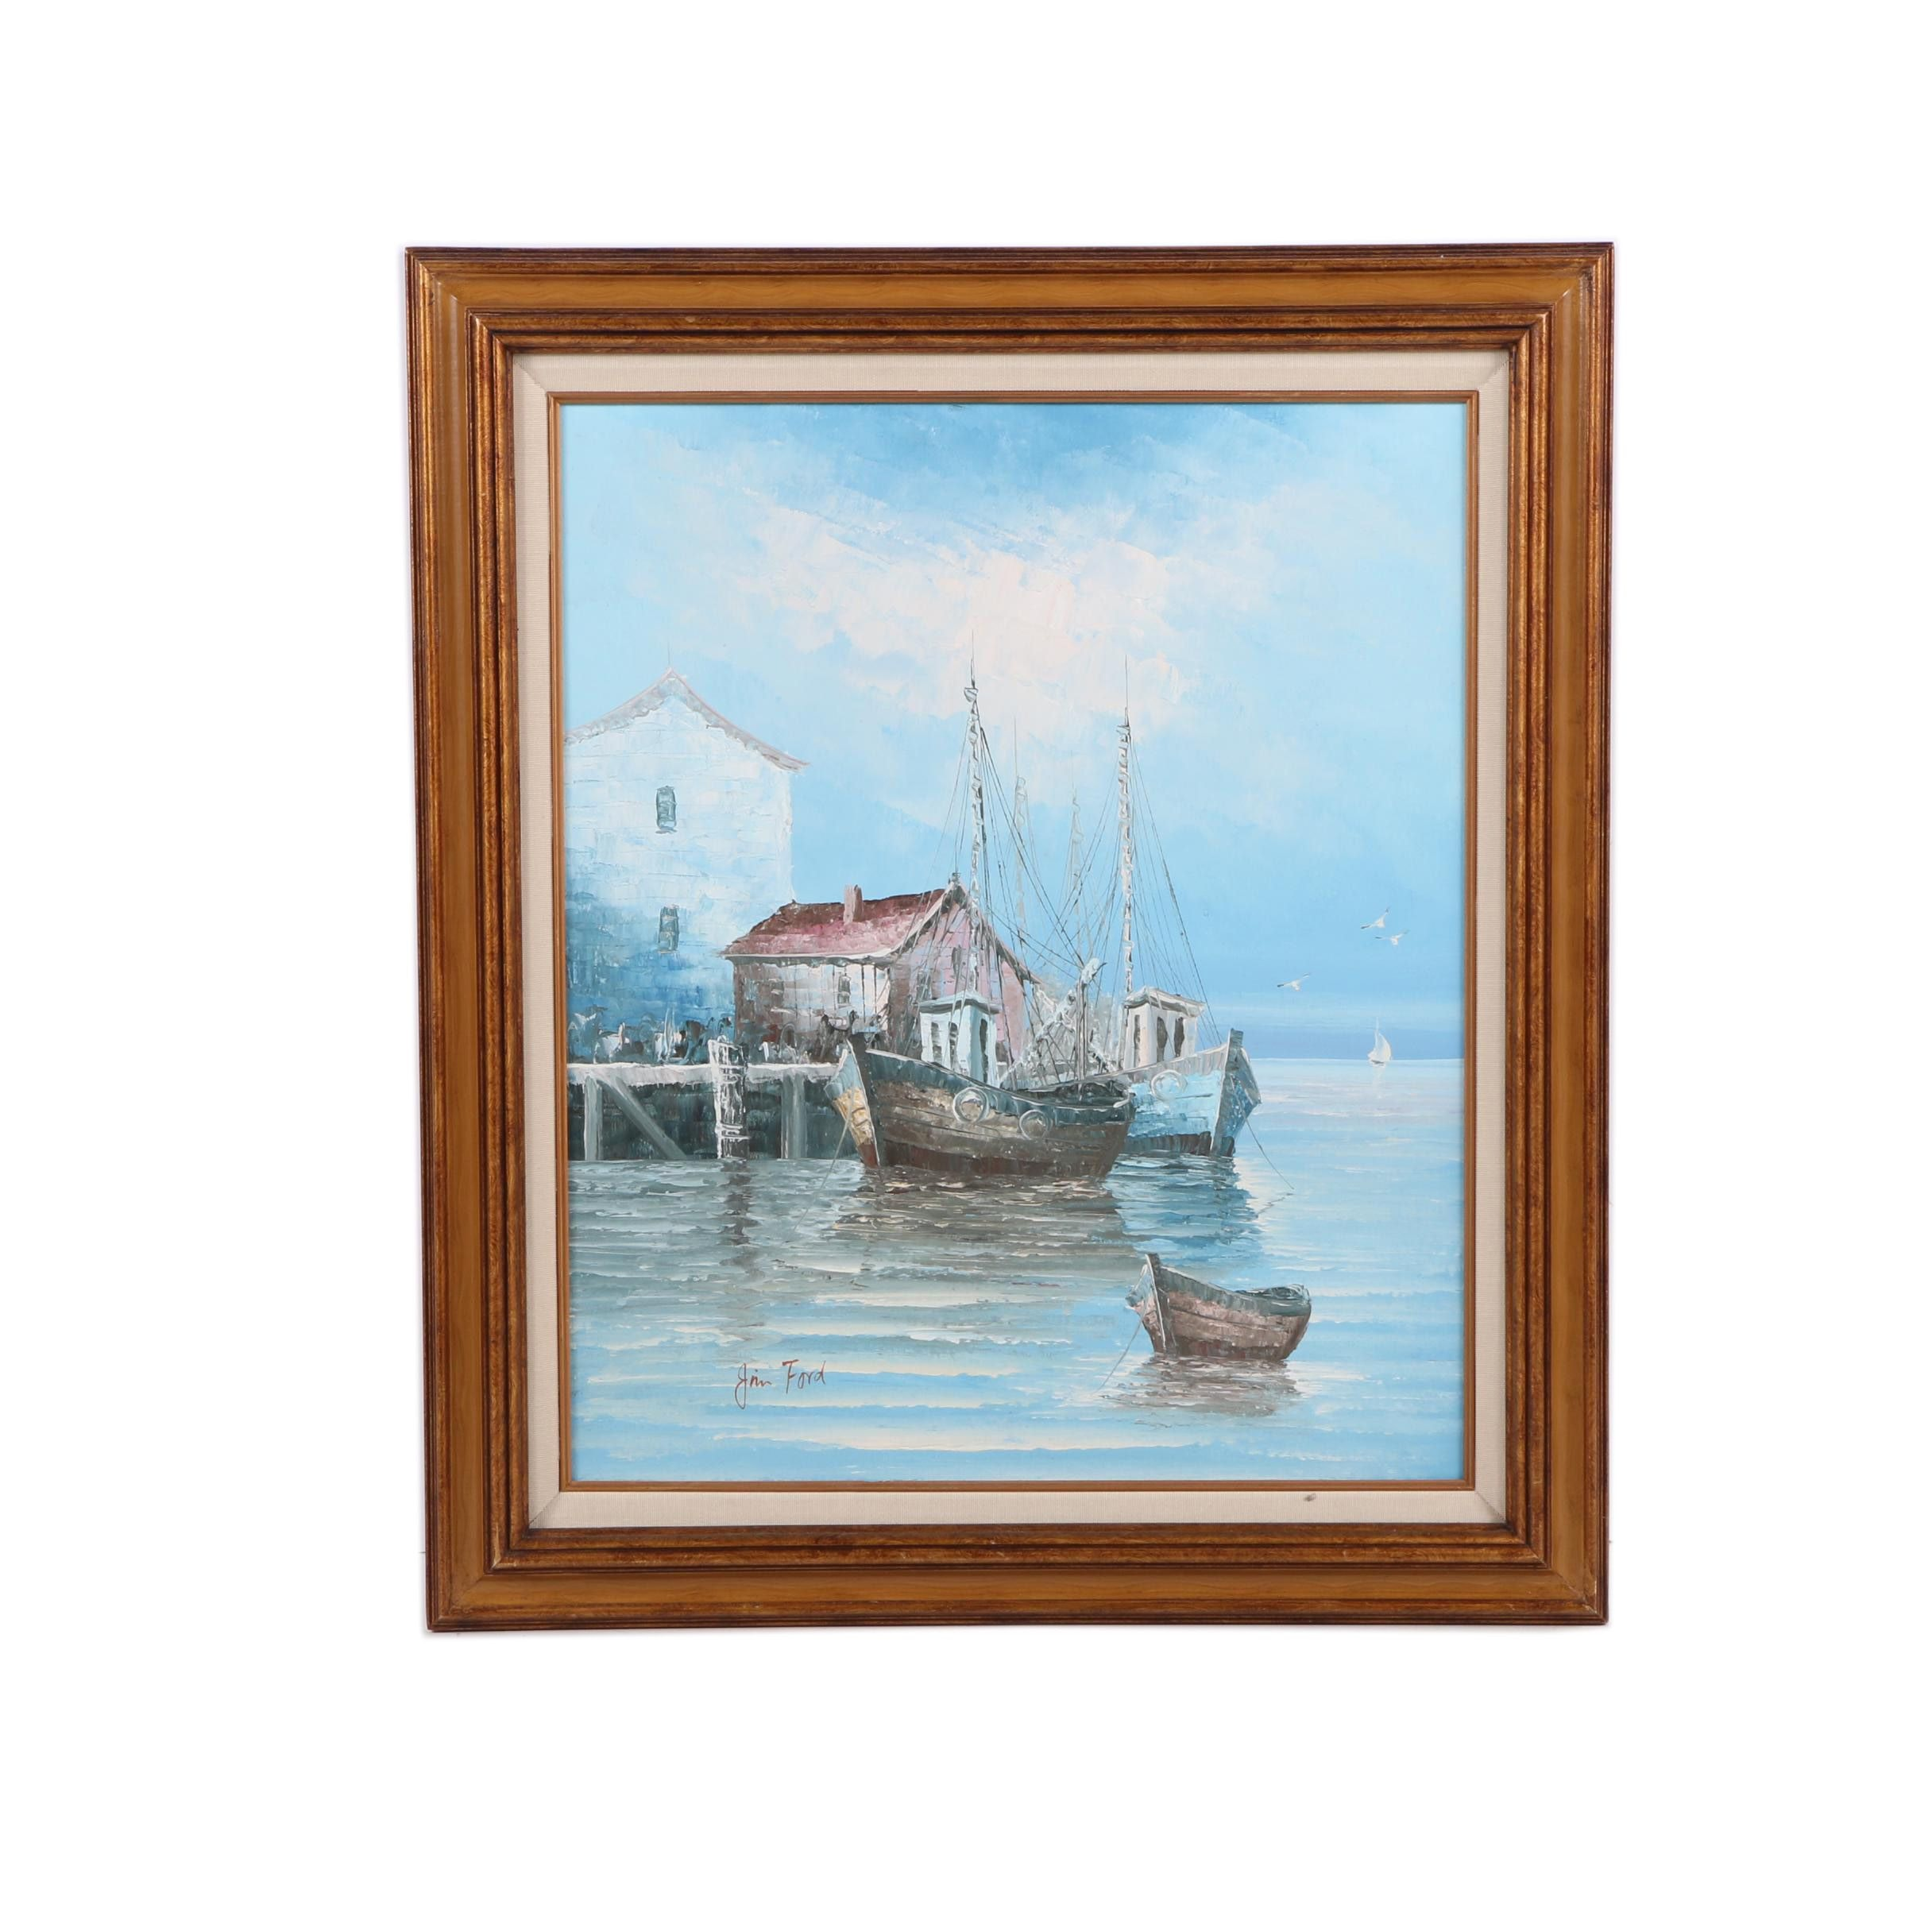 Jim Ford Oil Painting on Canvas of a Harbor